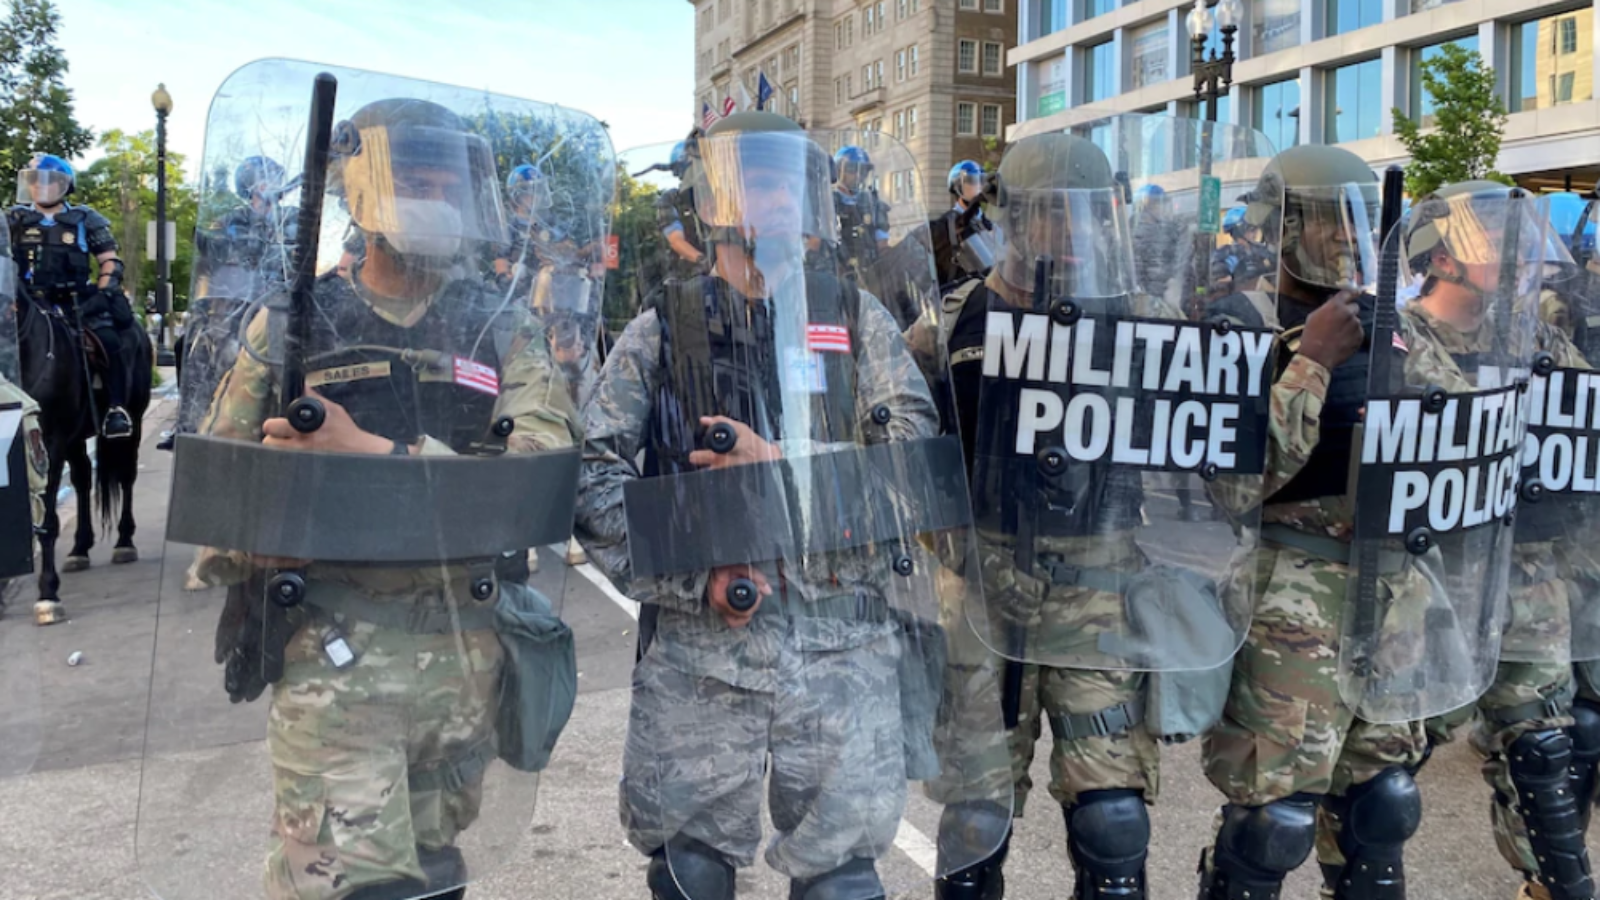 National Guard military police block a street near the White House on June 1 as military forces deployed to the streets of the nation's capital increases. (Andy Sullivan/Reuters)